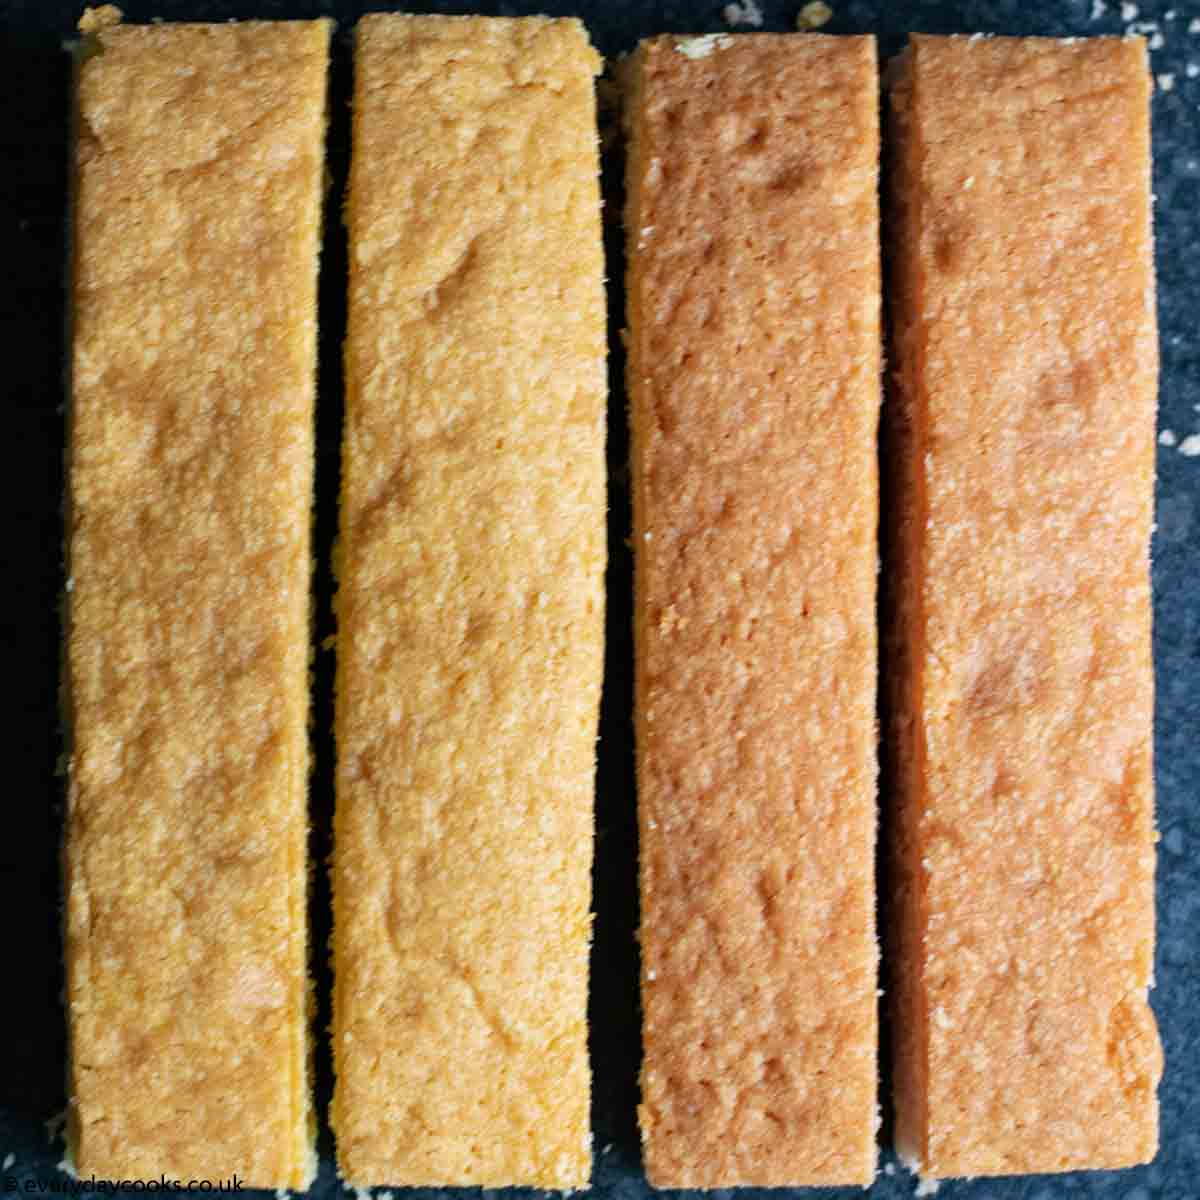 4 cakes ready to be assembled into Easy Battenberg Cake